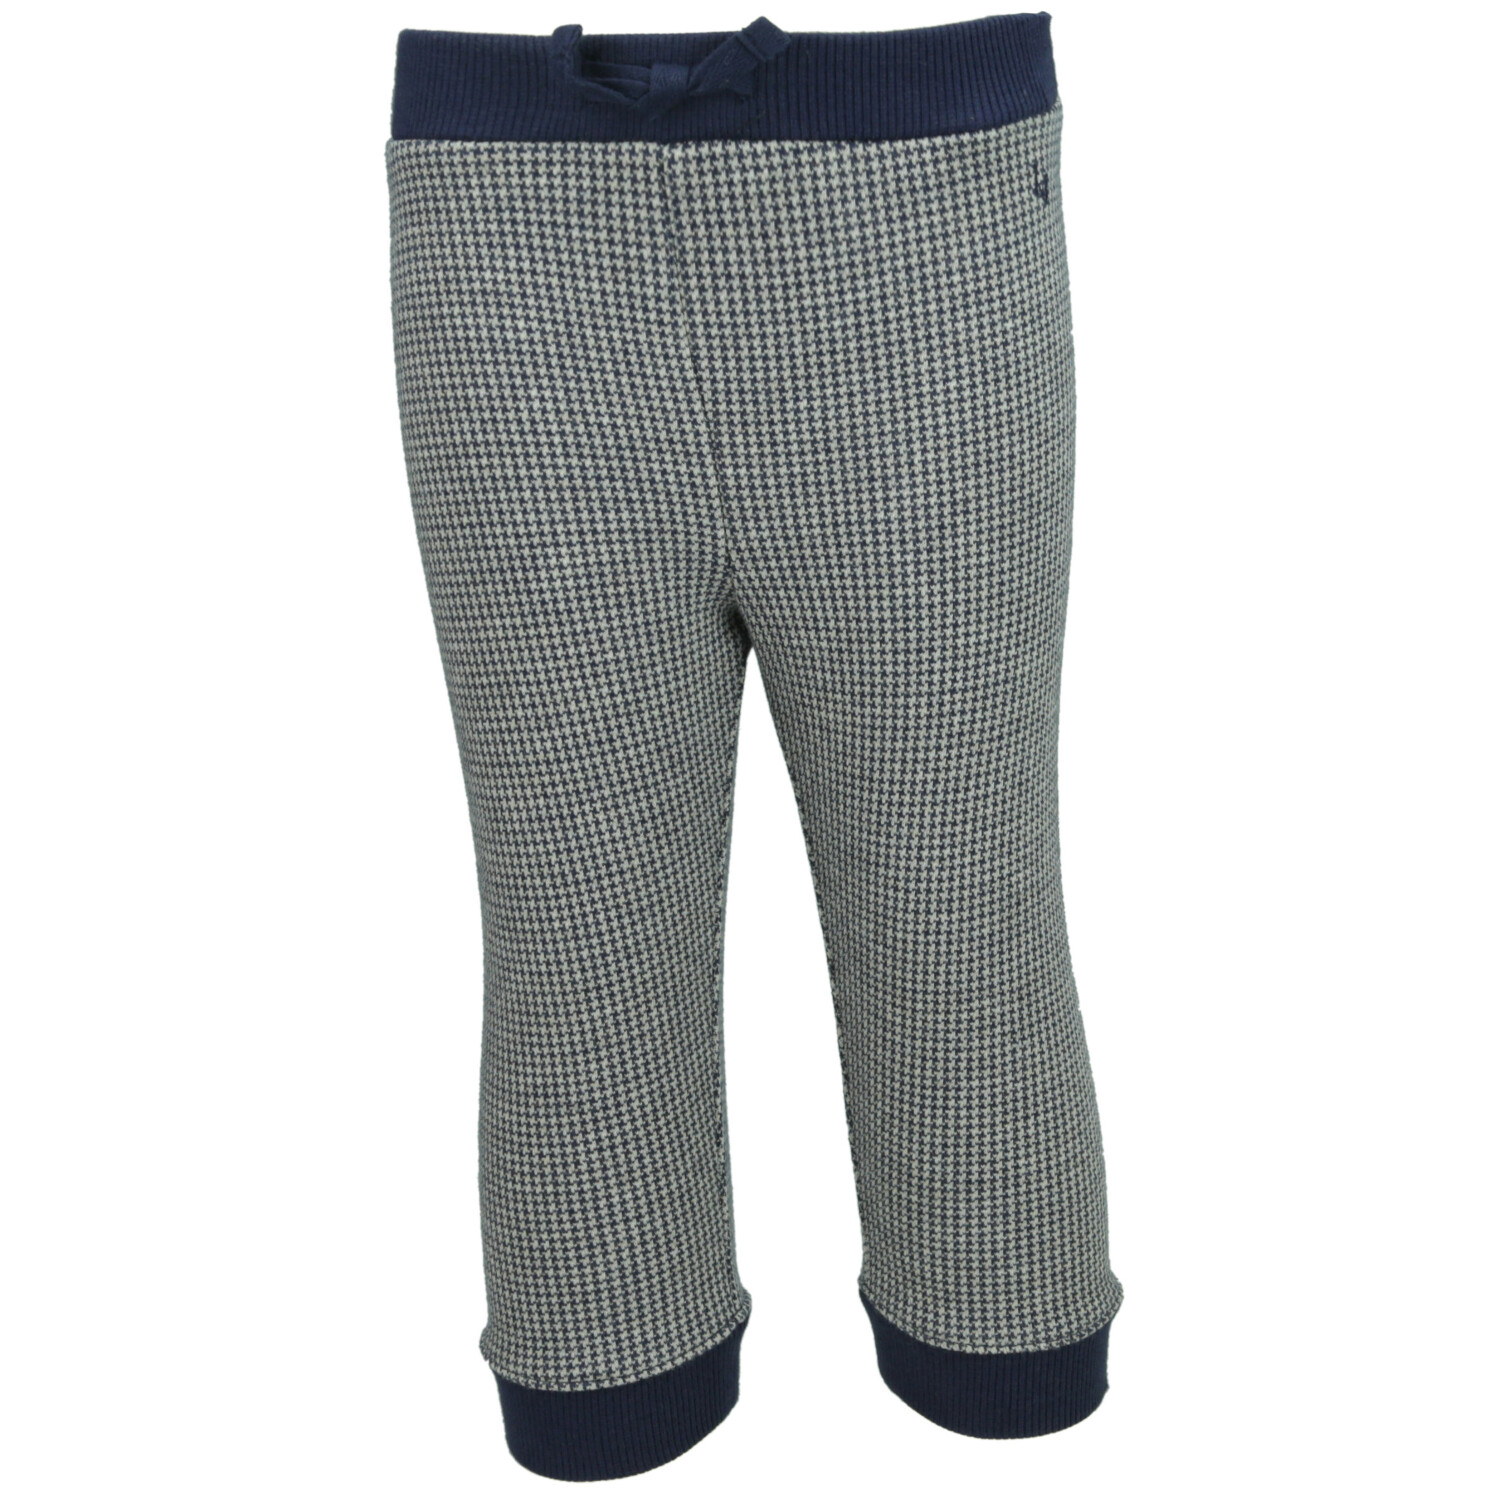 Janie And Jack Girl's Navy Herringbone Knit Jogger Athletic Bottom - 12-18 Months